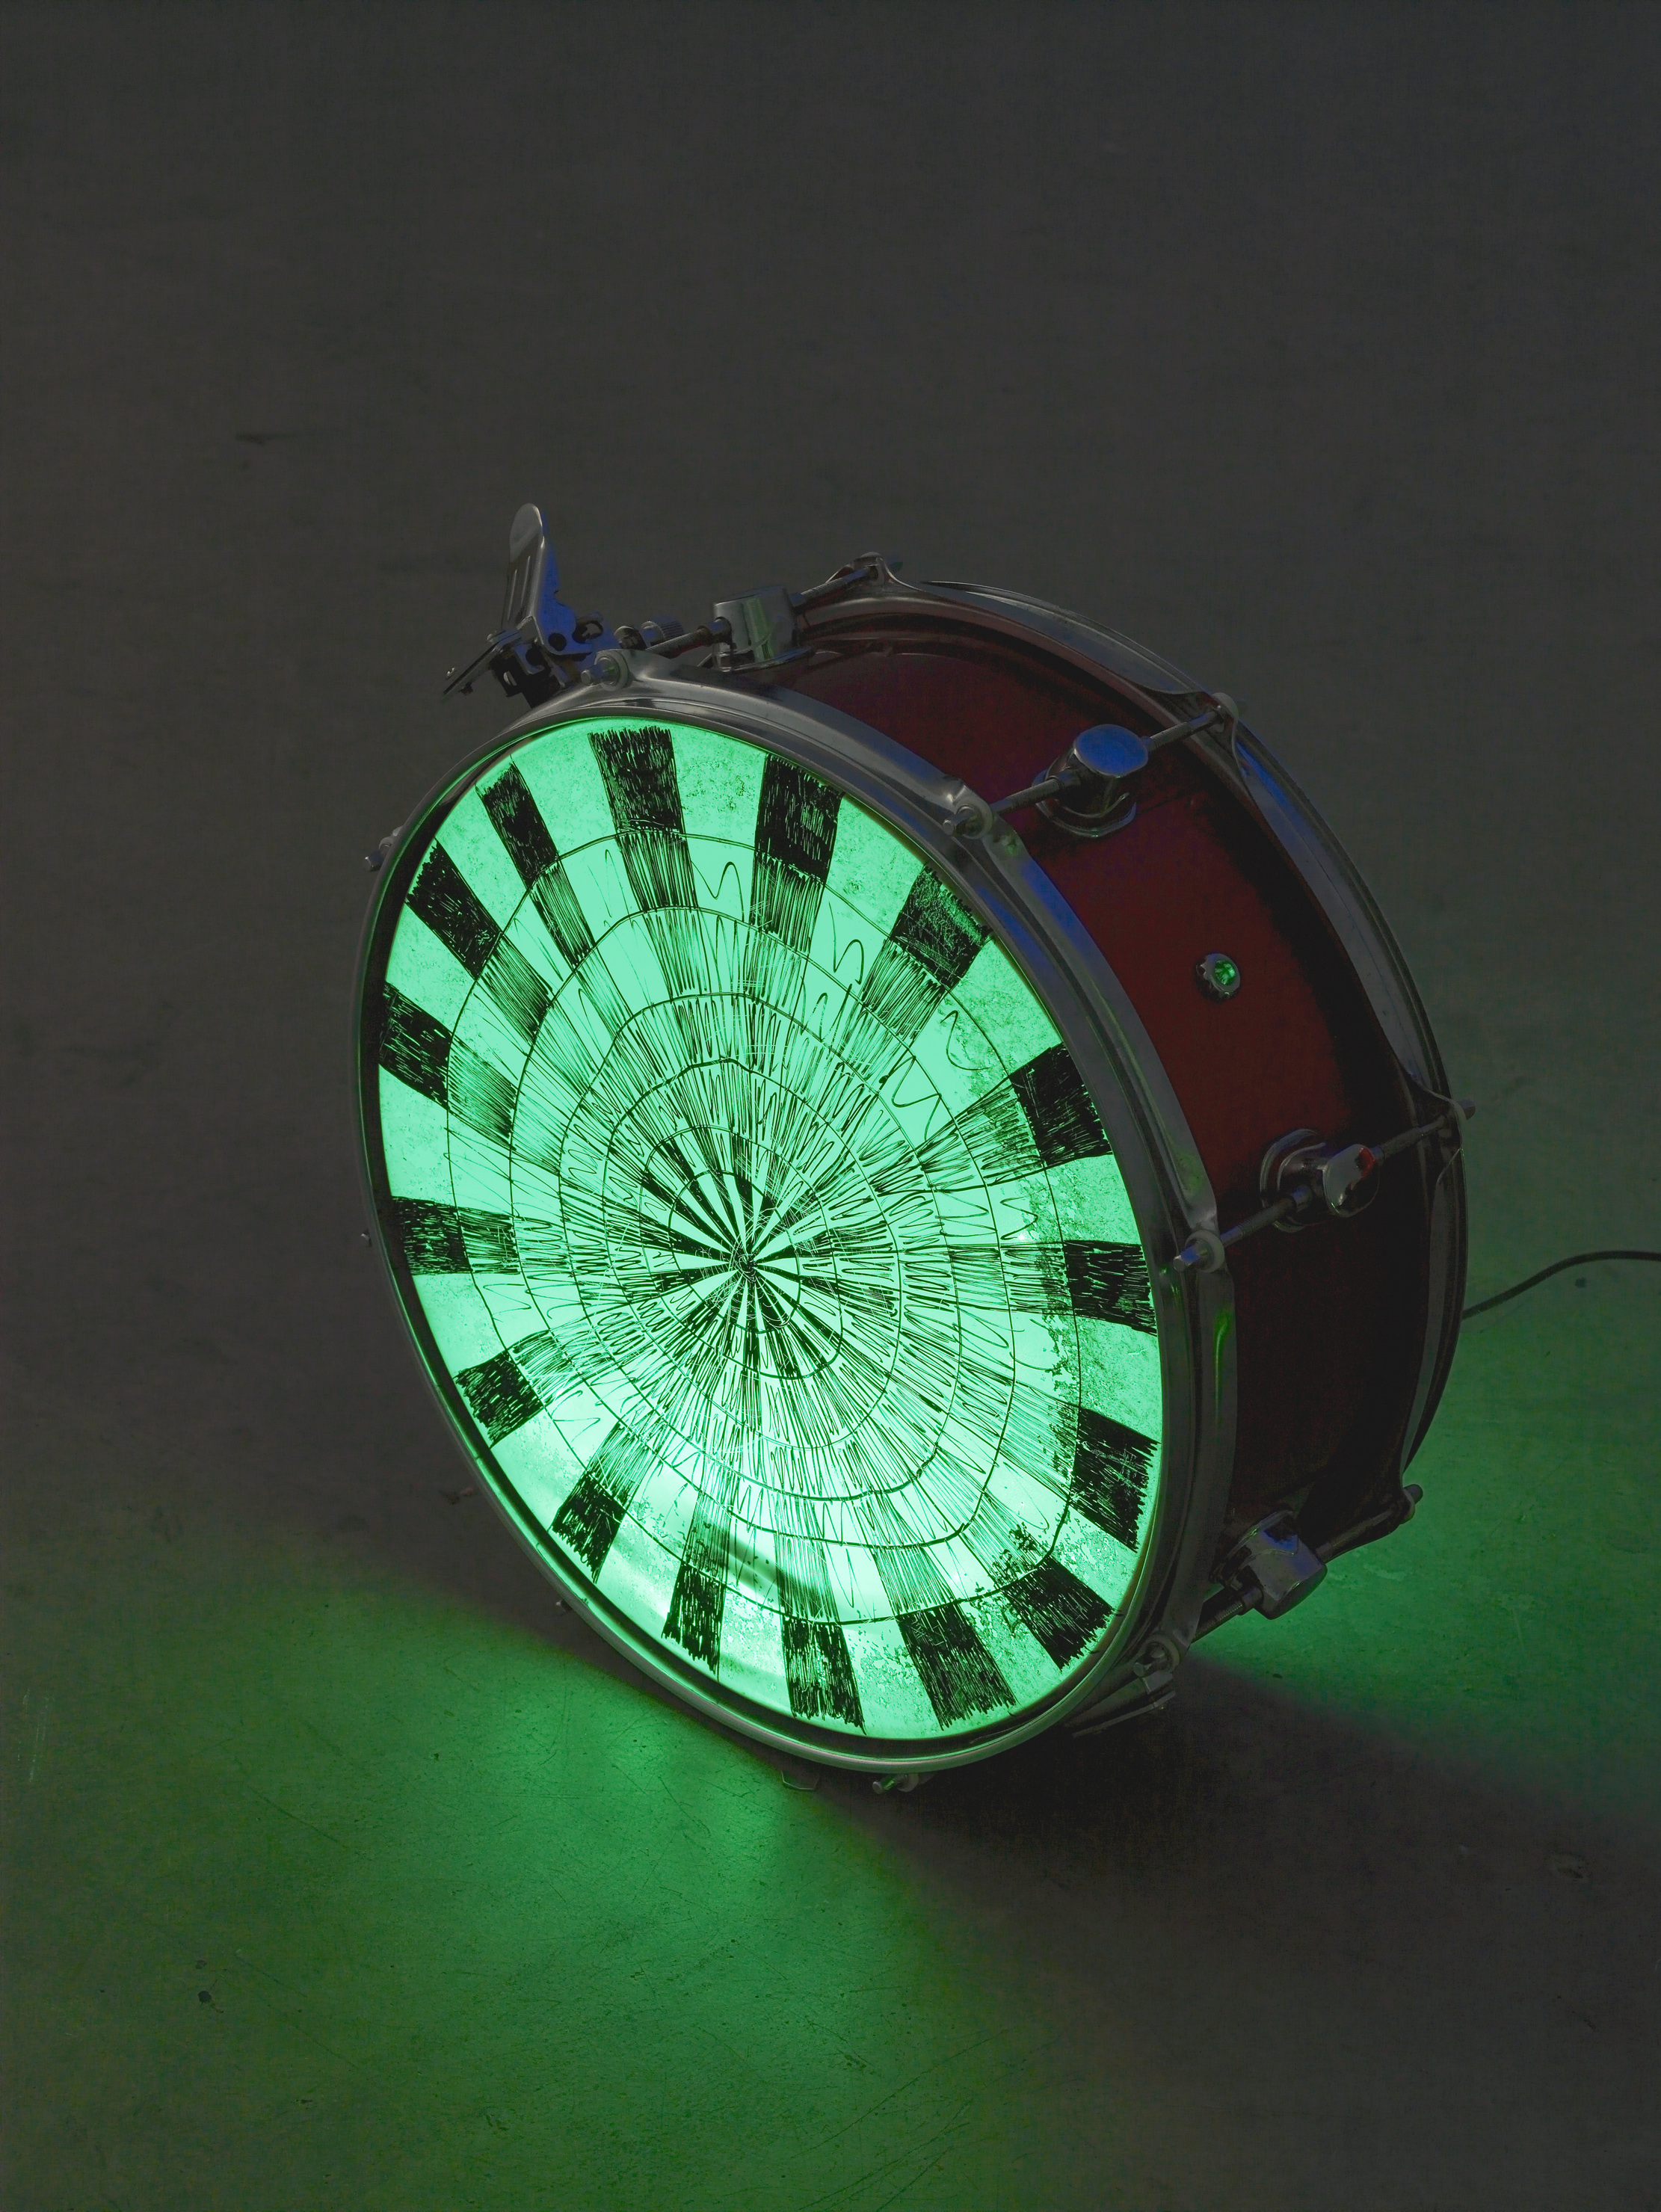 Matt Copson, Noooooooo, 2015, drum, LED strip lights, acrylic paint, 62 x 42 x 43 cm, 24 3/8 x 16 1/2 x 16 7/8 ins. Reynard Reforms , Matt Copson